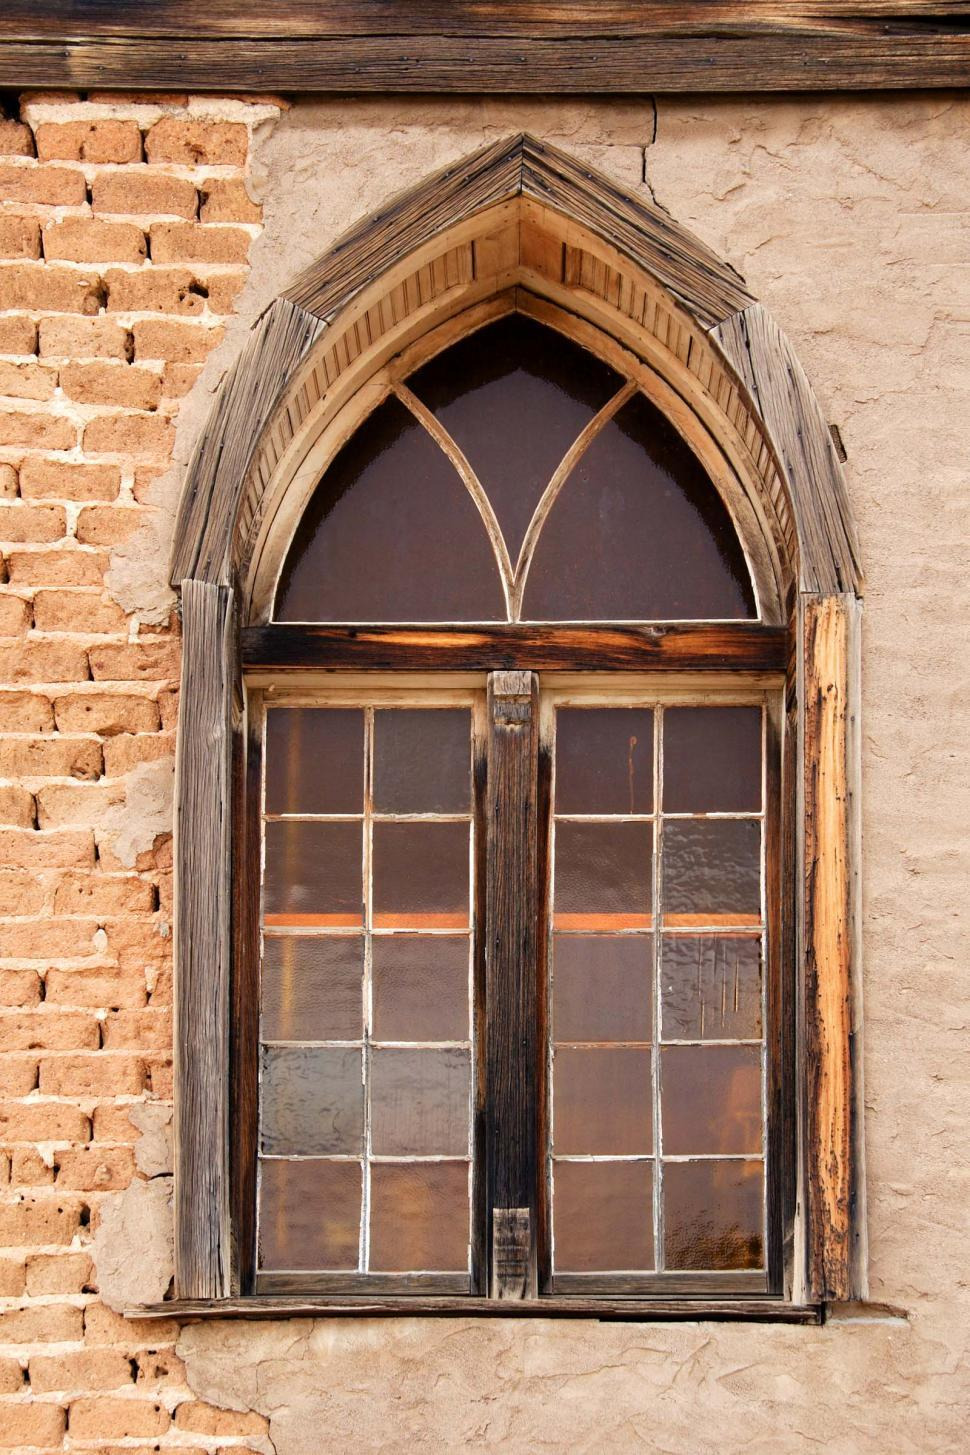 Download Free Stock HD Photo of Old church window Online